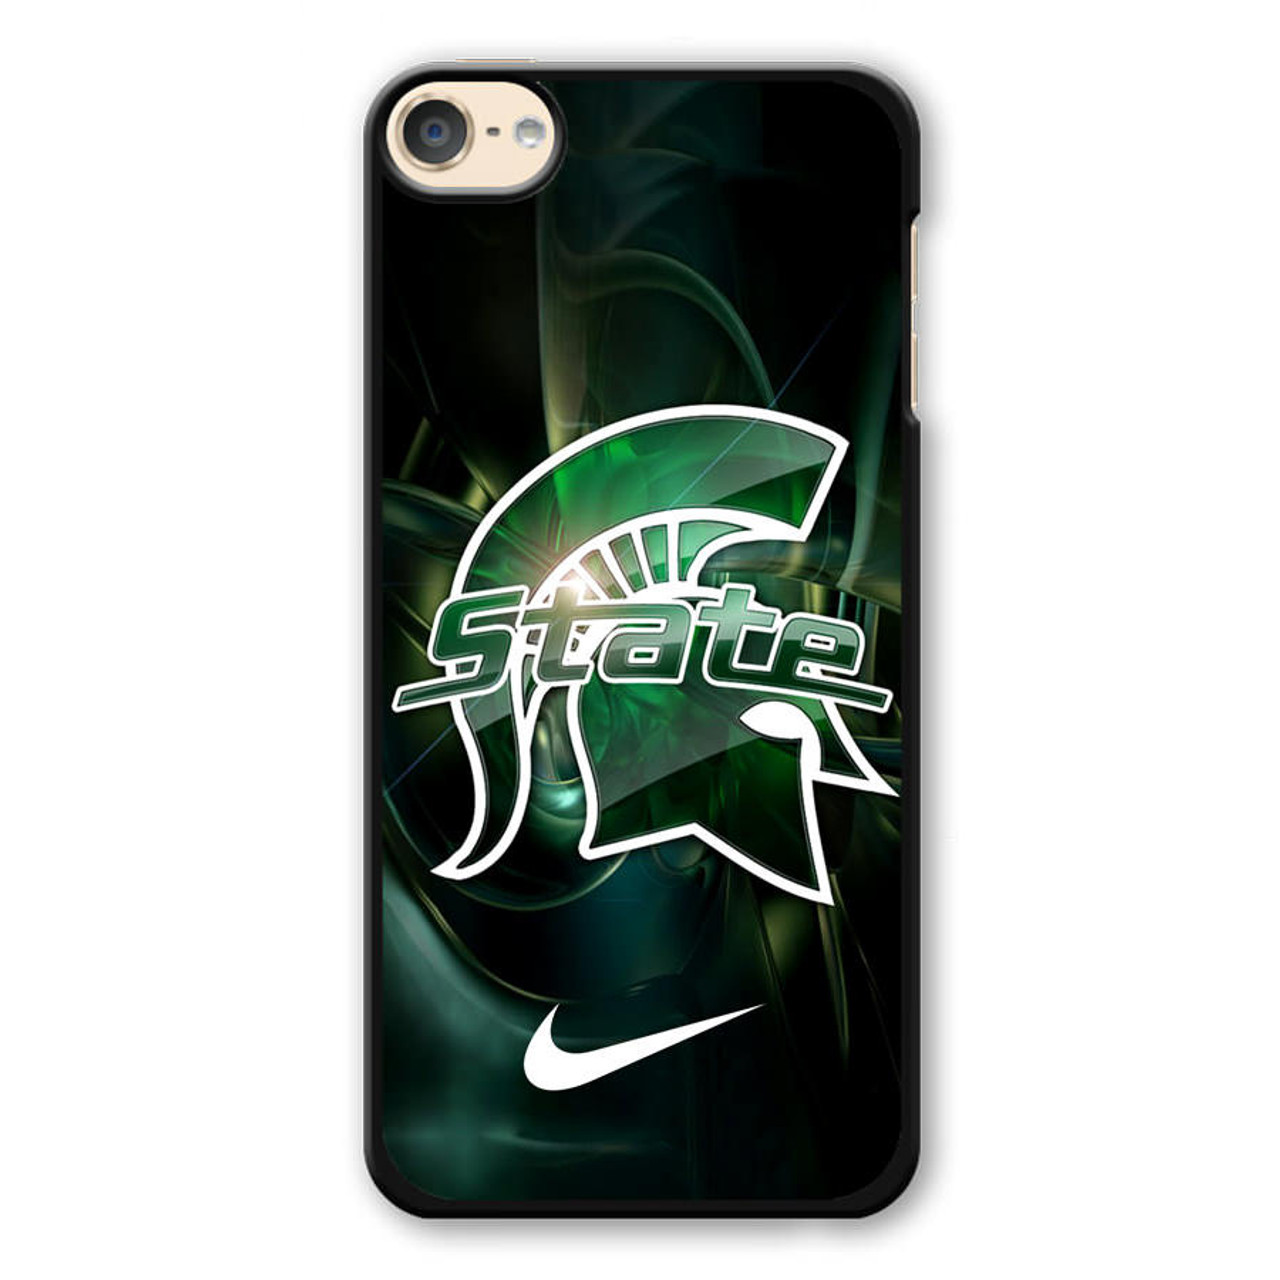 online retailer 9982e fc328 Michigan State Nike iPod Touch 6 Case